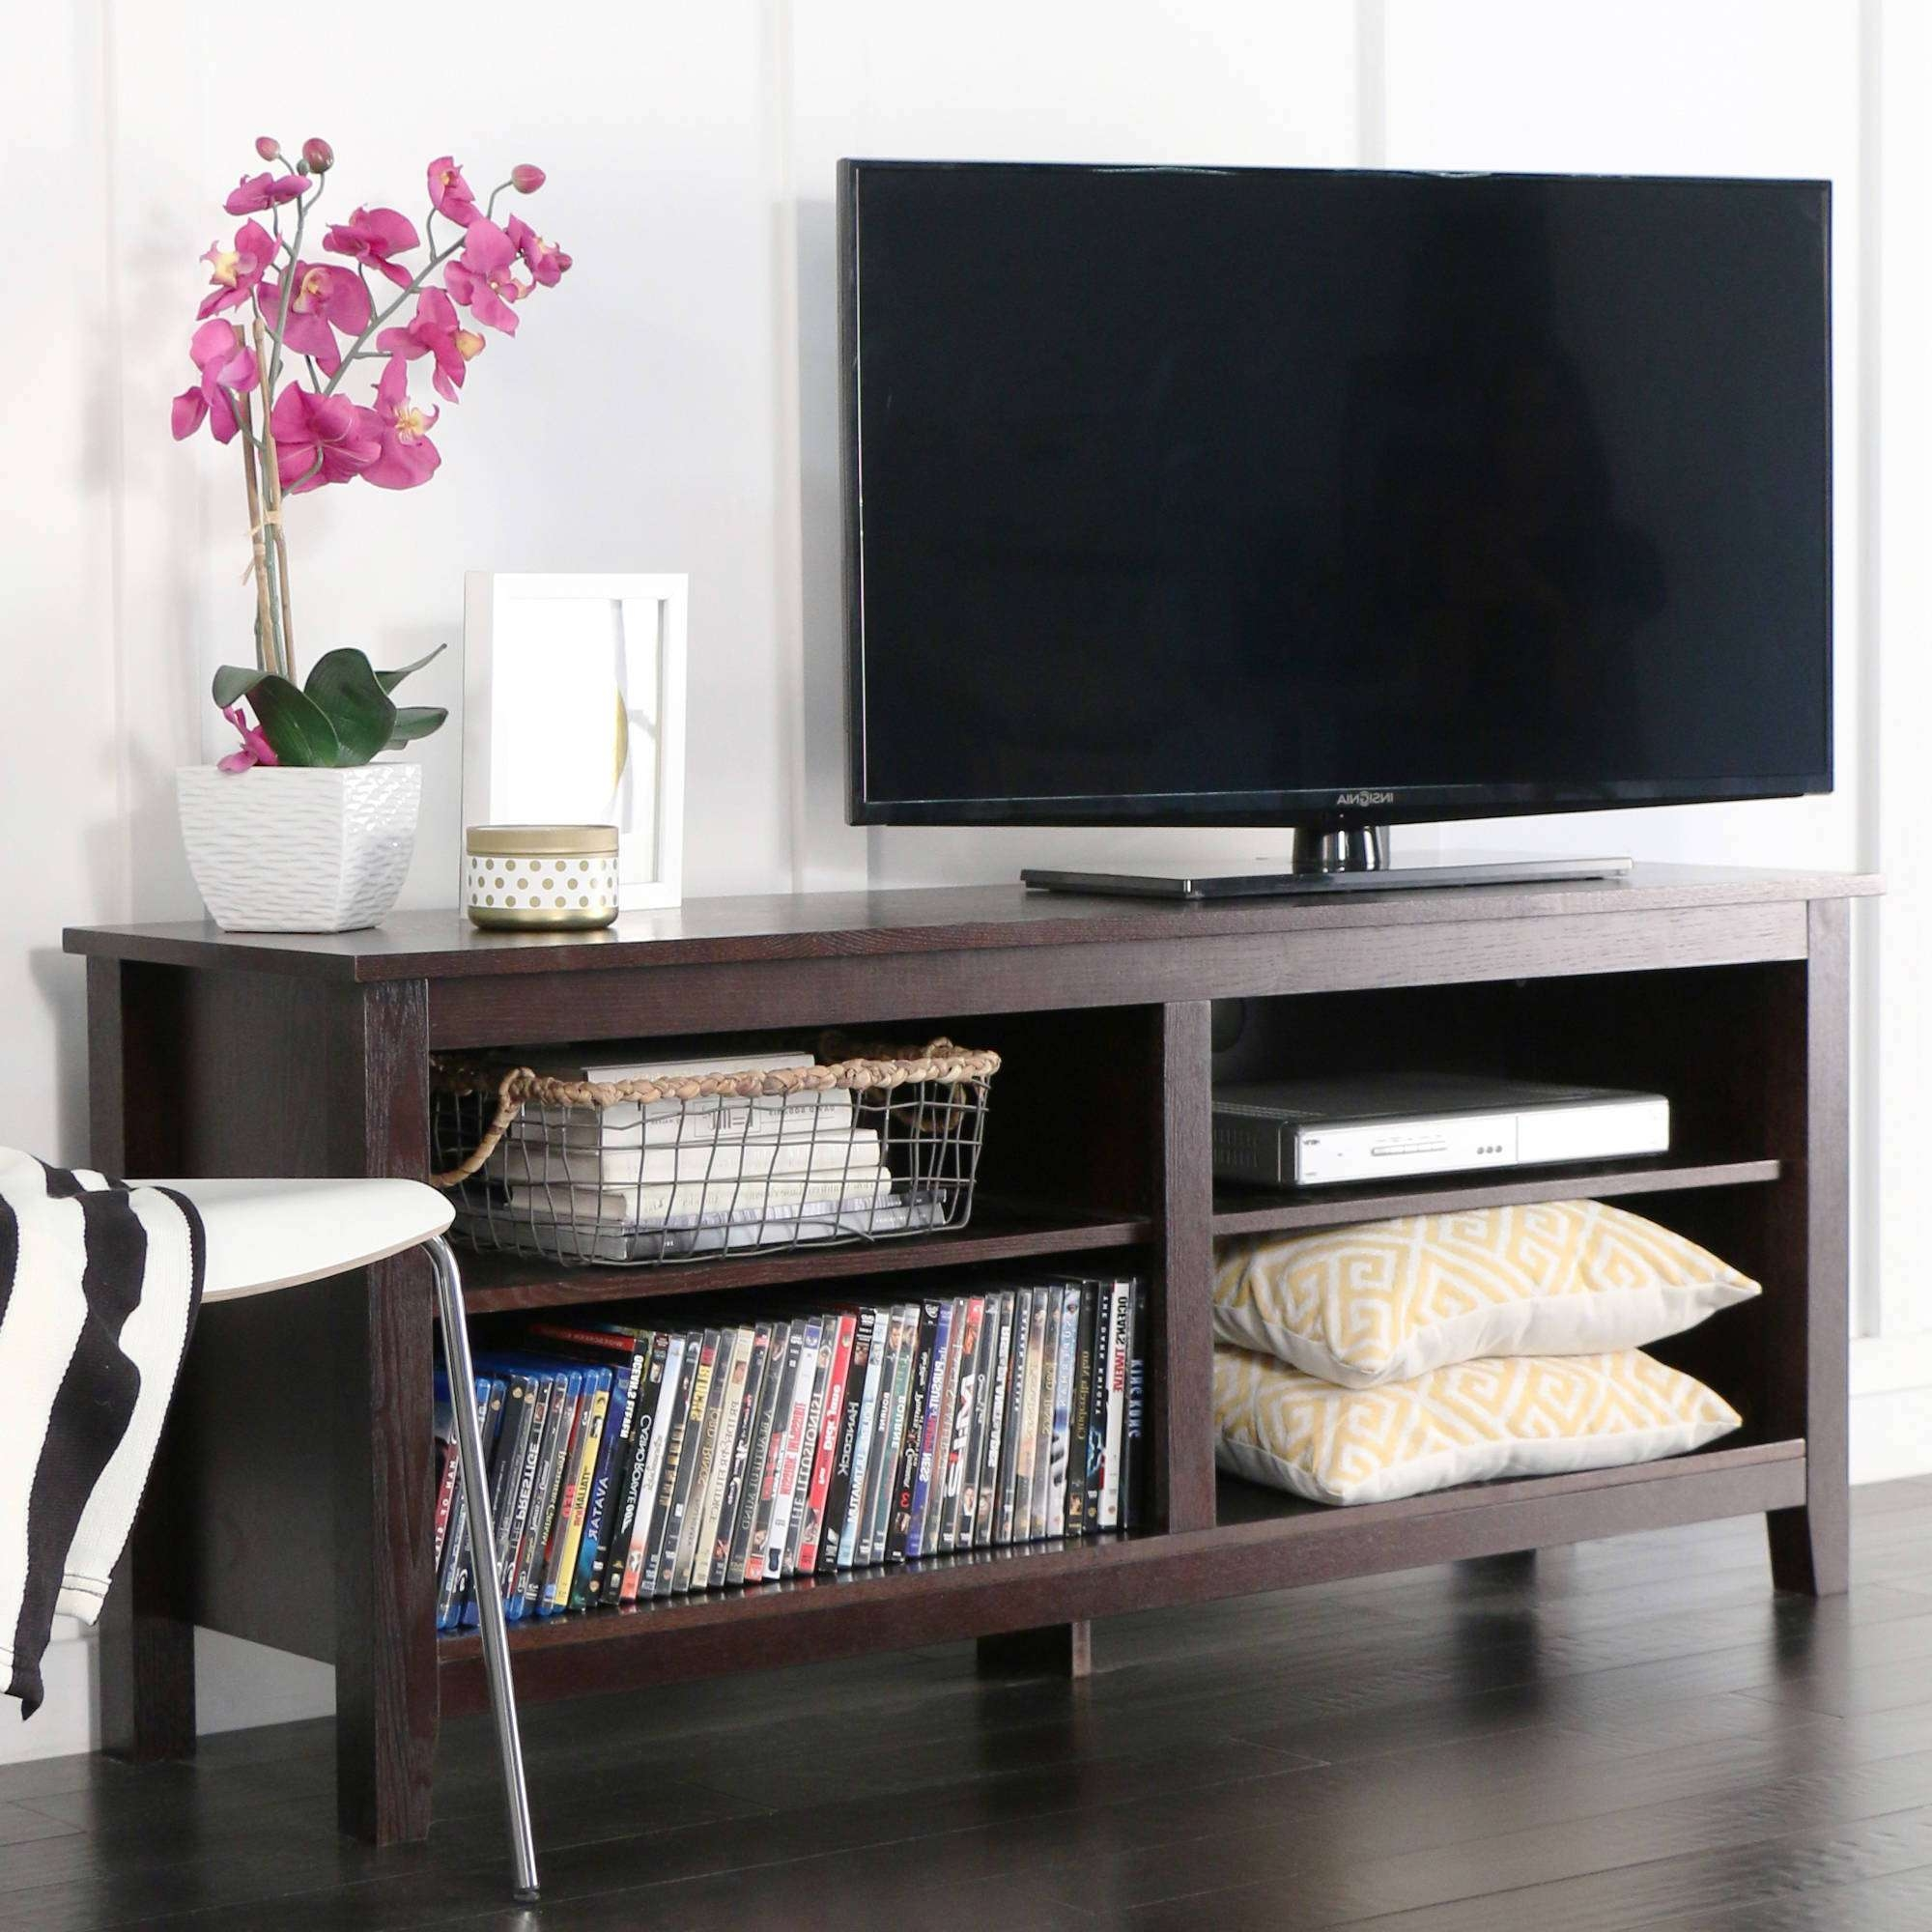 Tv : Stand Alone Tv Stands Exotic Stand Alone Tv Stands Within Stand Alone Tv Stands (View 18 of 20)